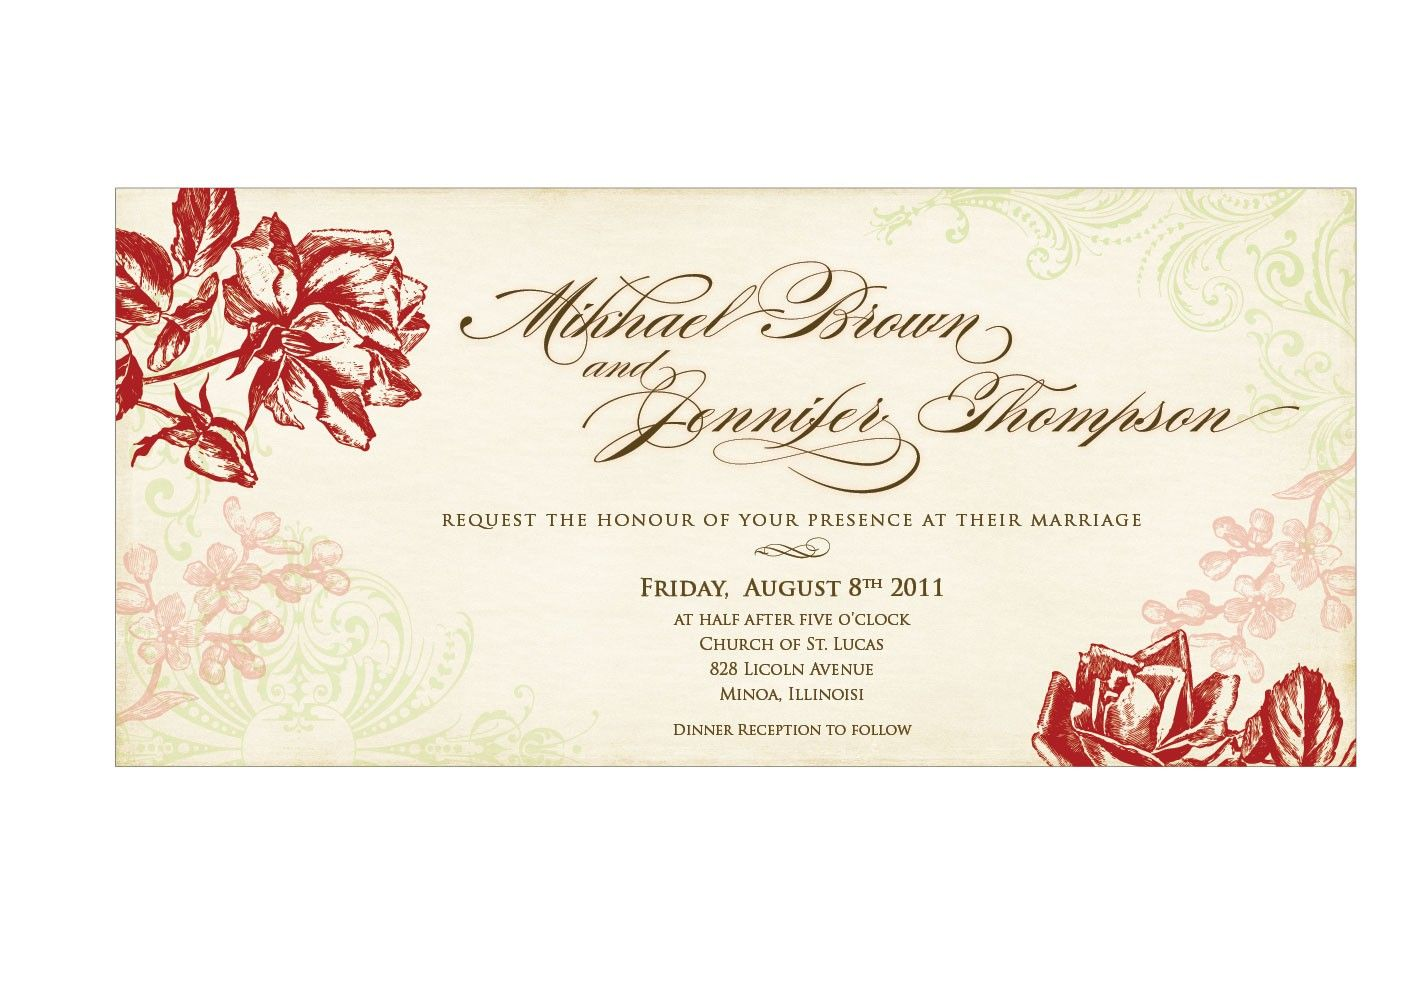 Wedding invitation templates wedding invitation templates wedding invitation templates wedding invitation templates vintage by charisdesignstudio stopboris Images